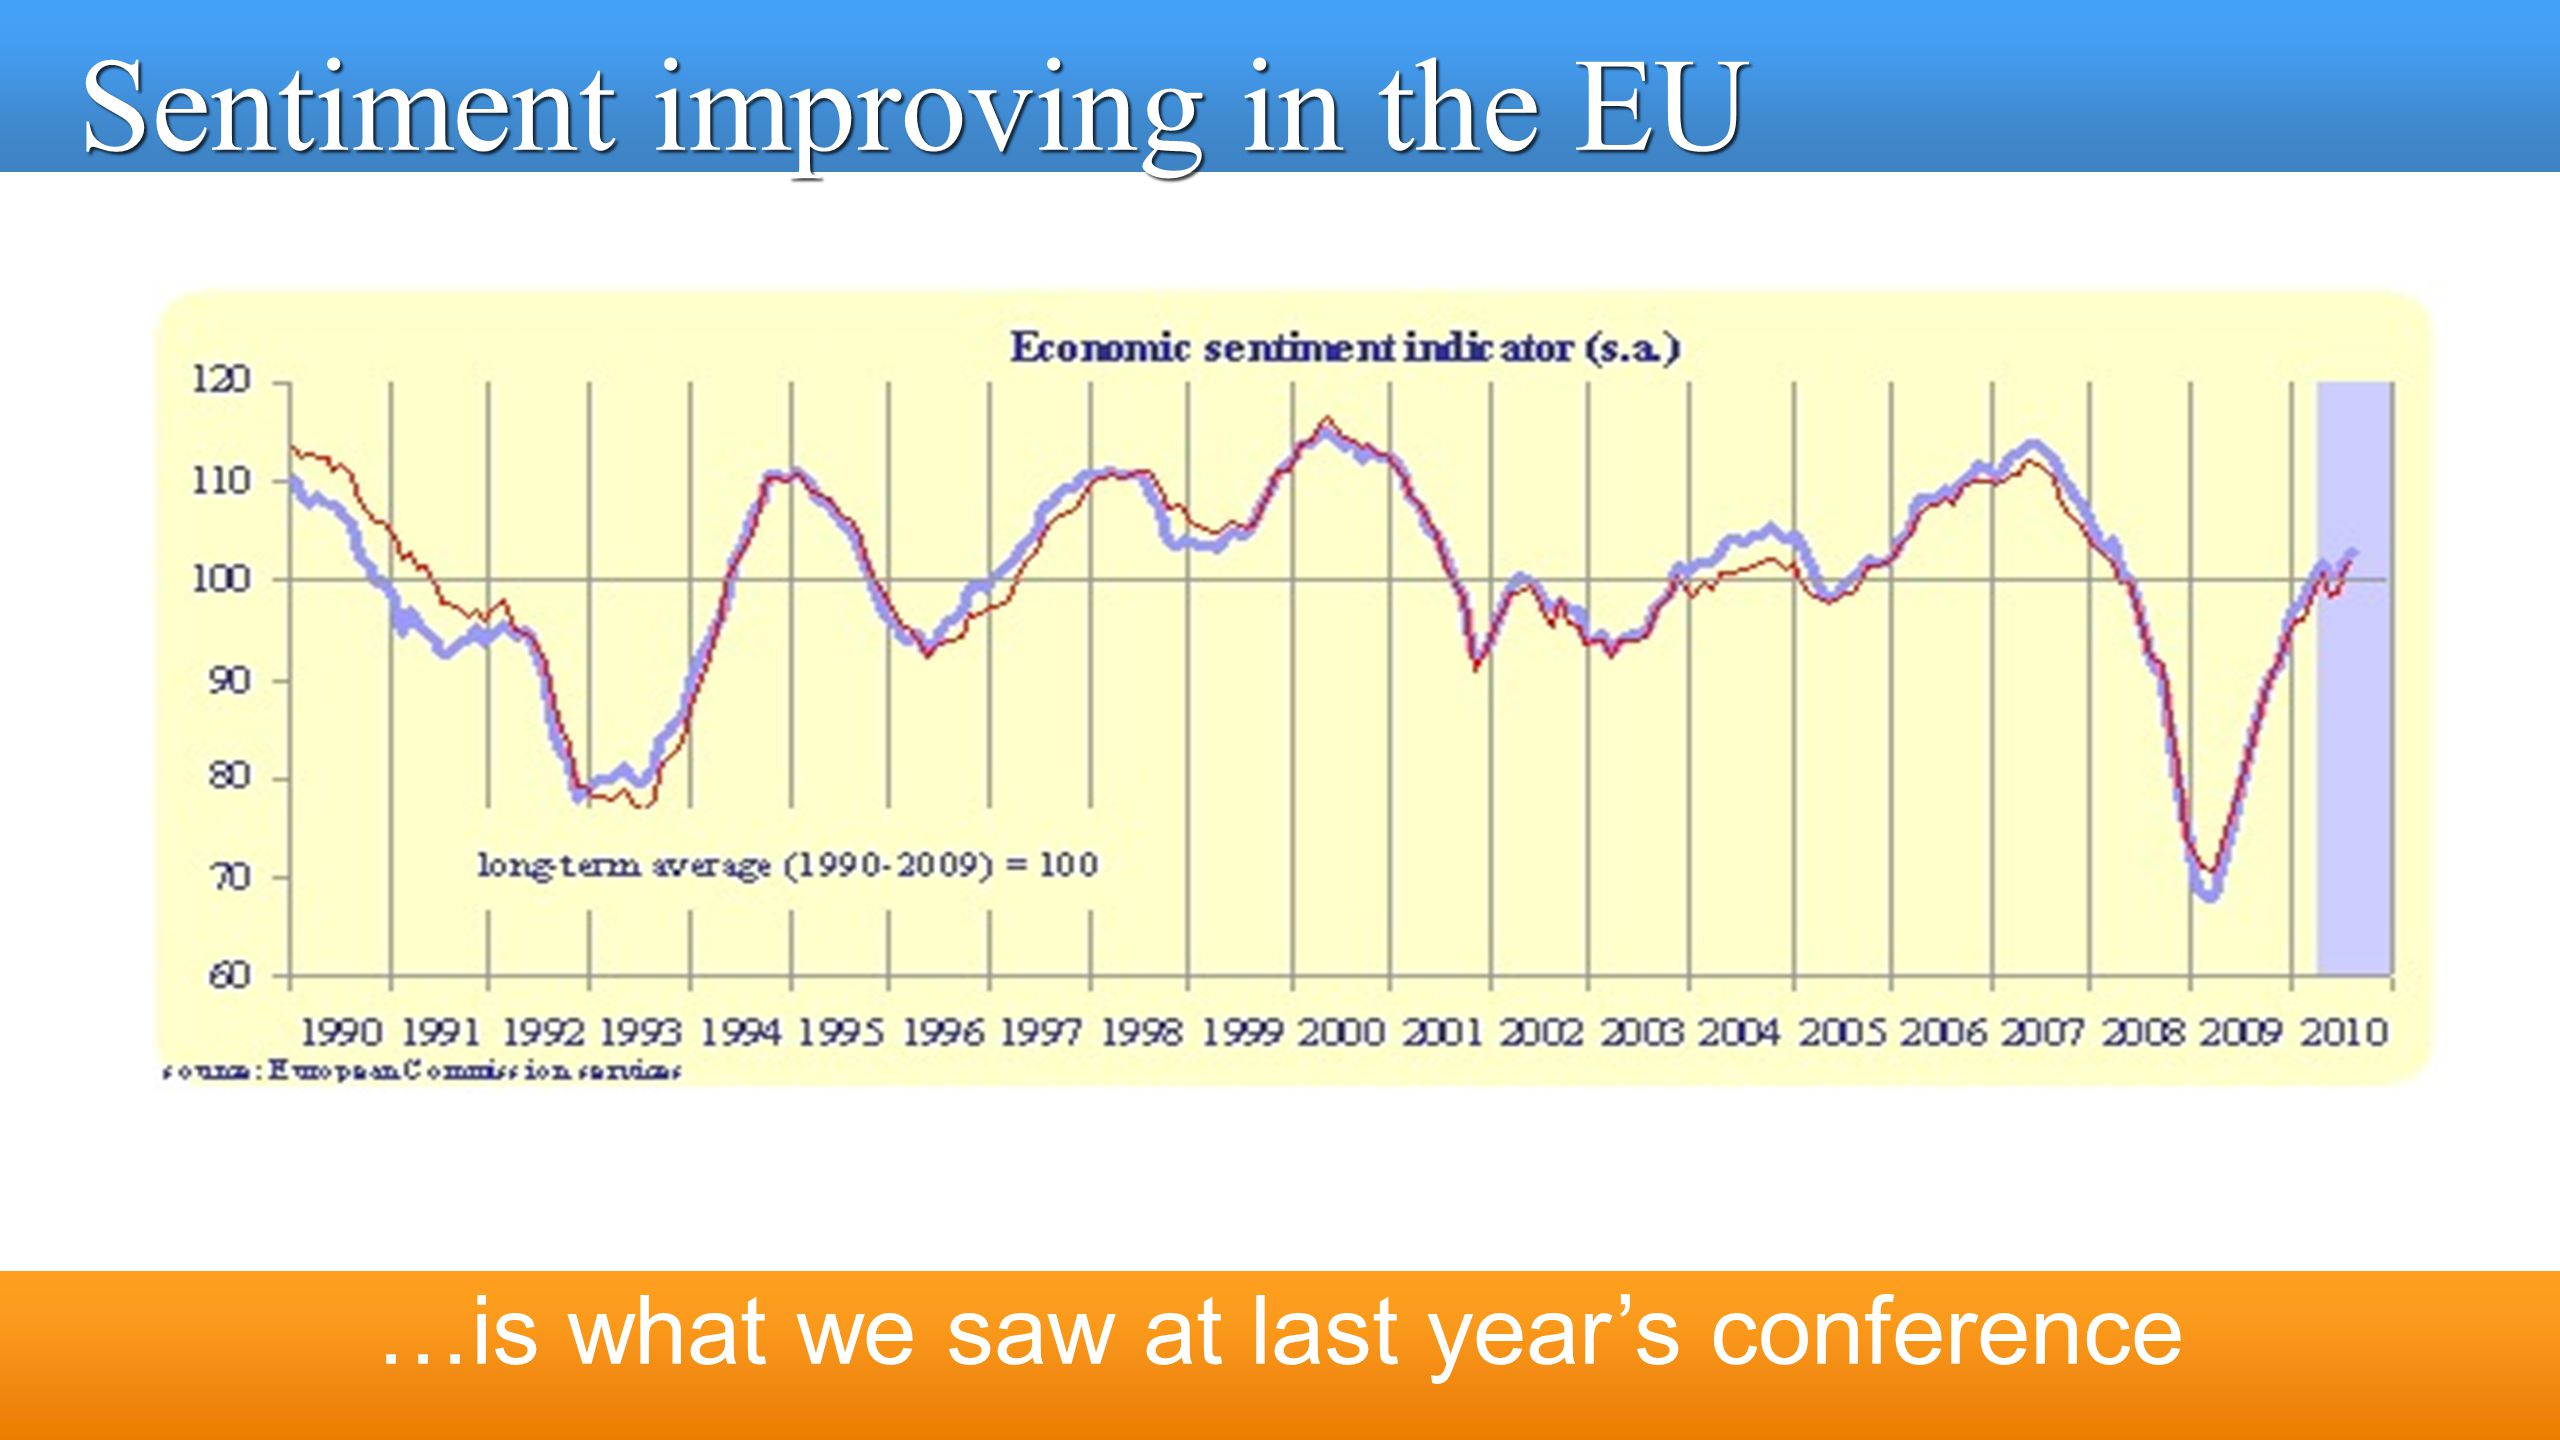 …is what we saw at last year's conference Sentiment improving in the EU